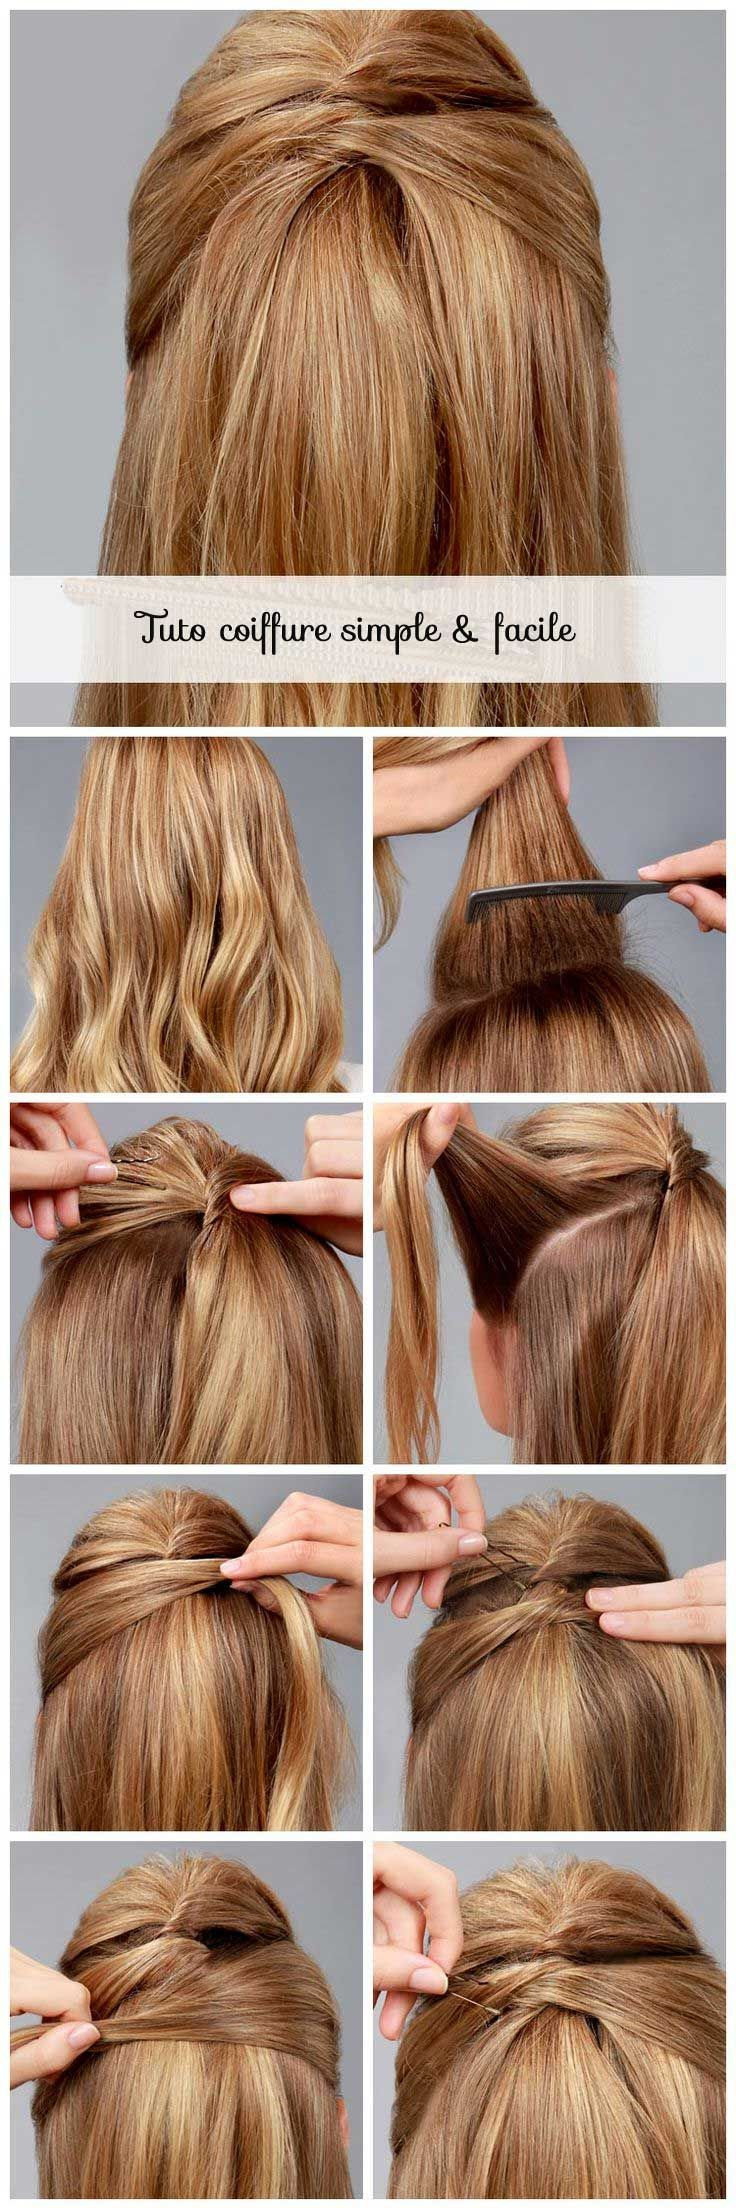 tuto-coiffure-simple-et-facile